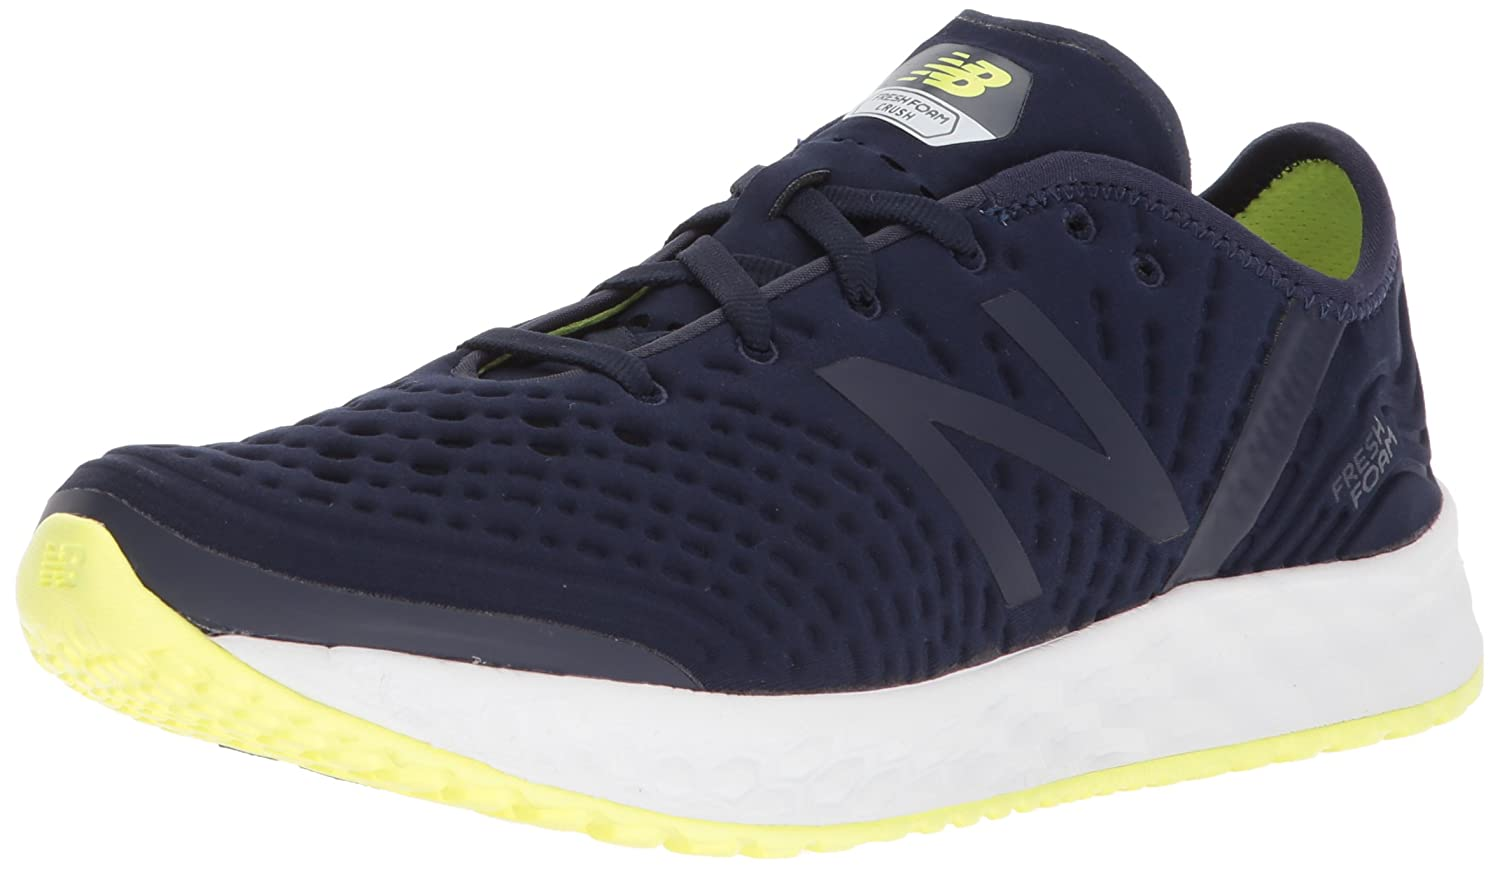 New Balance Women's Fresh Foam Crush V1 Cross Trainer B005ATPTIO 5 D US|Pigment/Solar Yellow